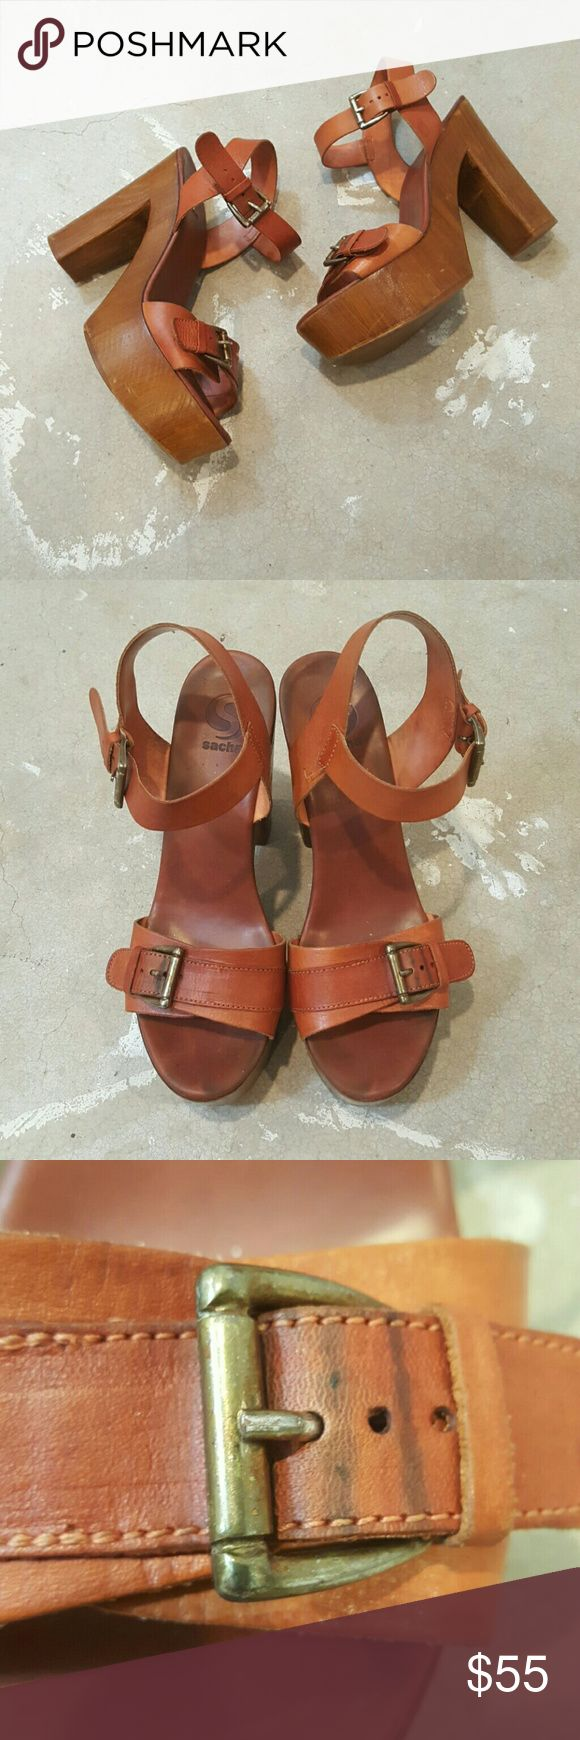 """Sacha Rust Brown Platform Sandals I am selling my all time favorite, most comfortable pair of Sacha platform, sandals. These are so cool in a reddish, rust, brown color which is what immediately drew me to them, once I put them on I was hooked.  They do have signs of wear, see pics, however they cool """"vibe"""" only get better with age.  60's revival in the best way!!  Pair them with flair jeans and you are a trendsetting arrow, reaching back in time and pulling out current must haves!!  Size…"""